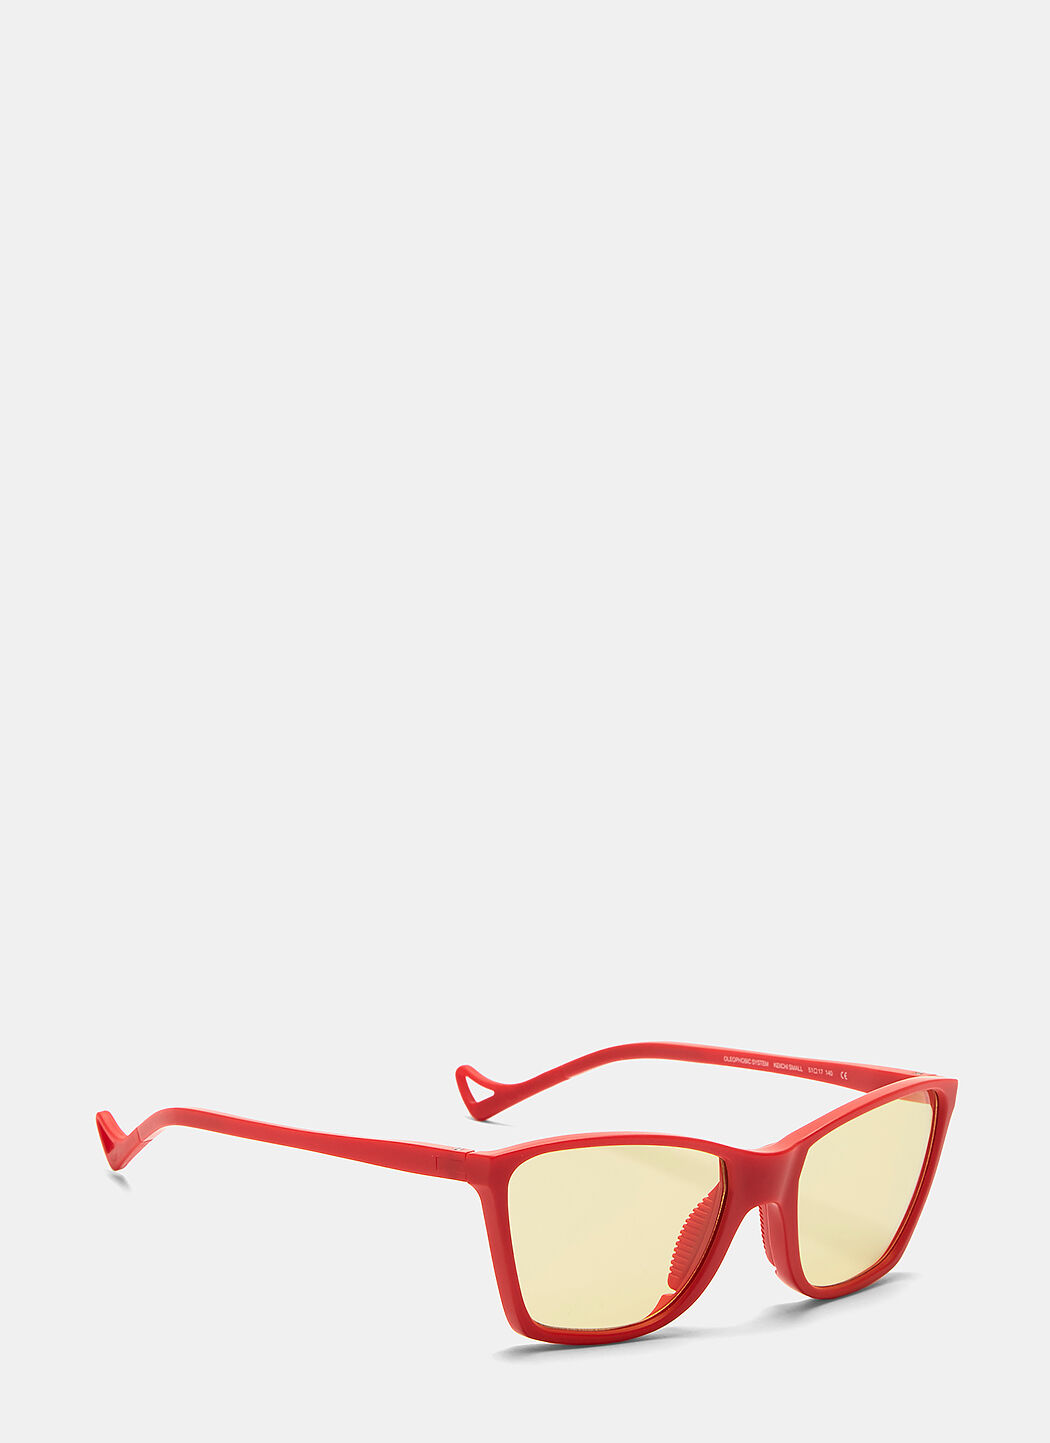 DISTRICT VISION Keiichi Small Sunglasses in Red and Yellow